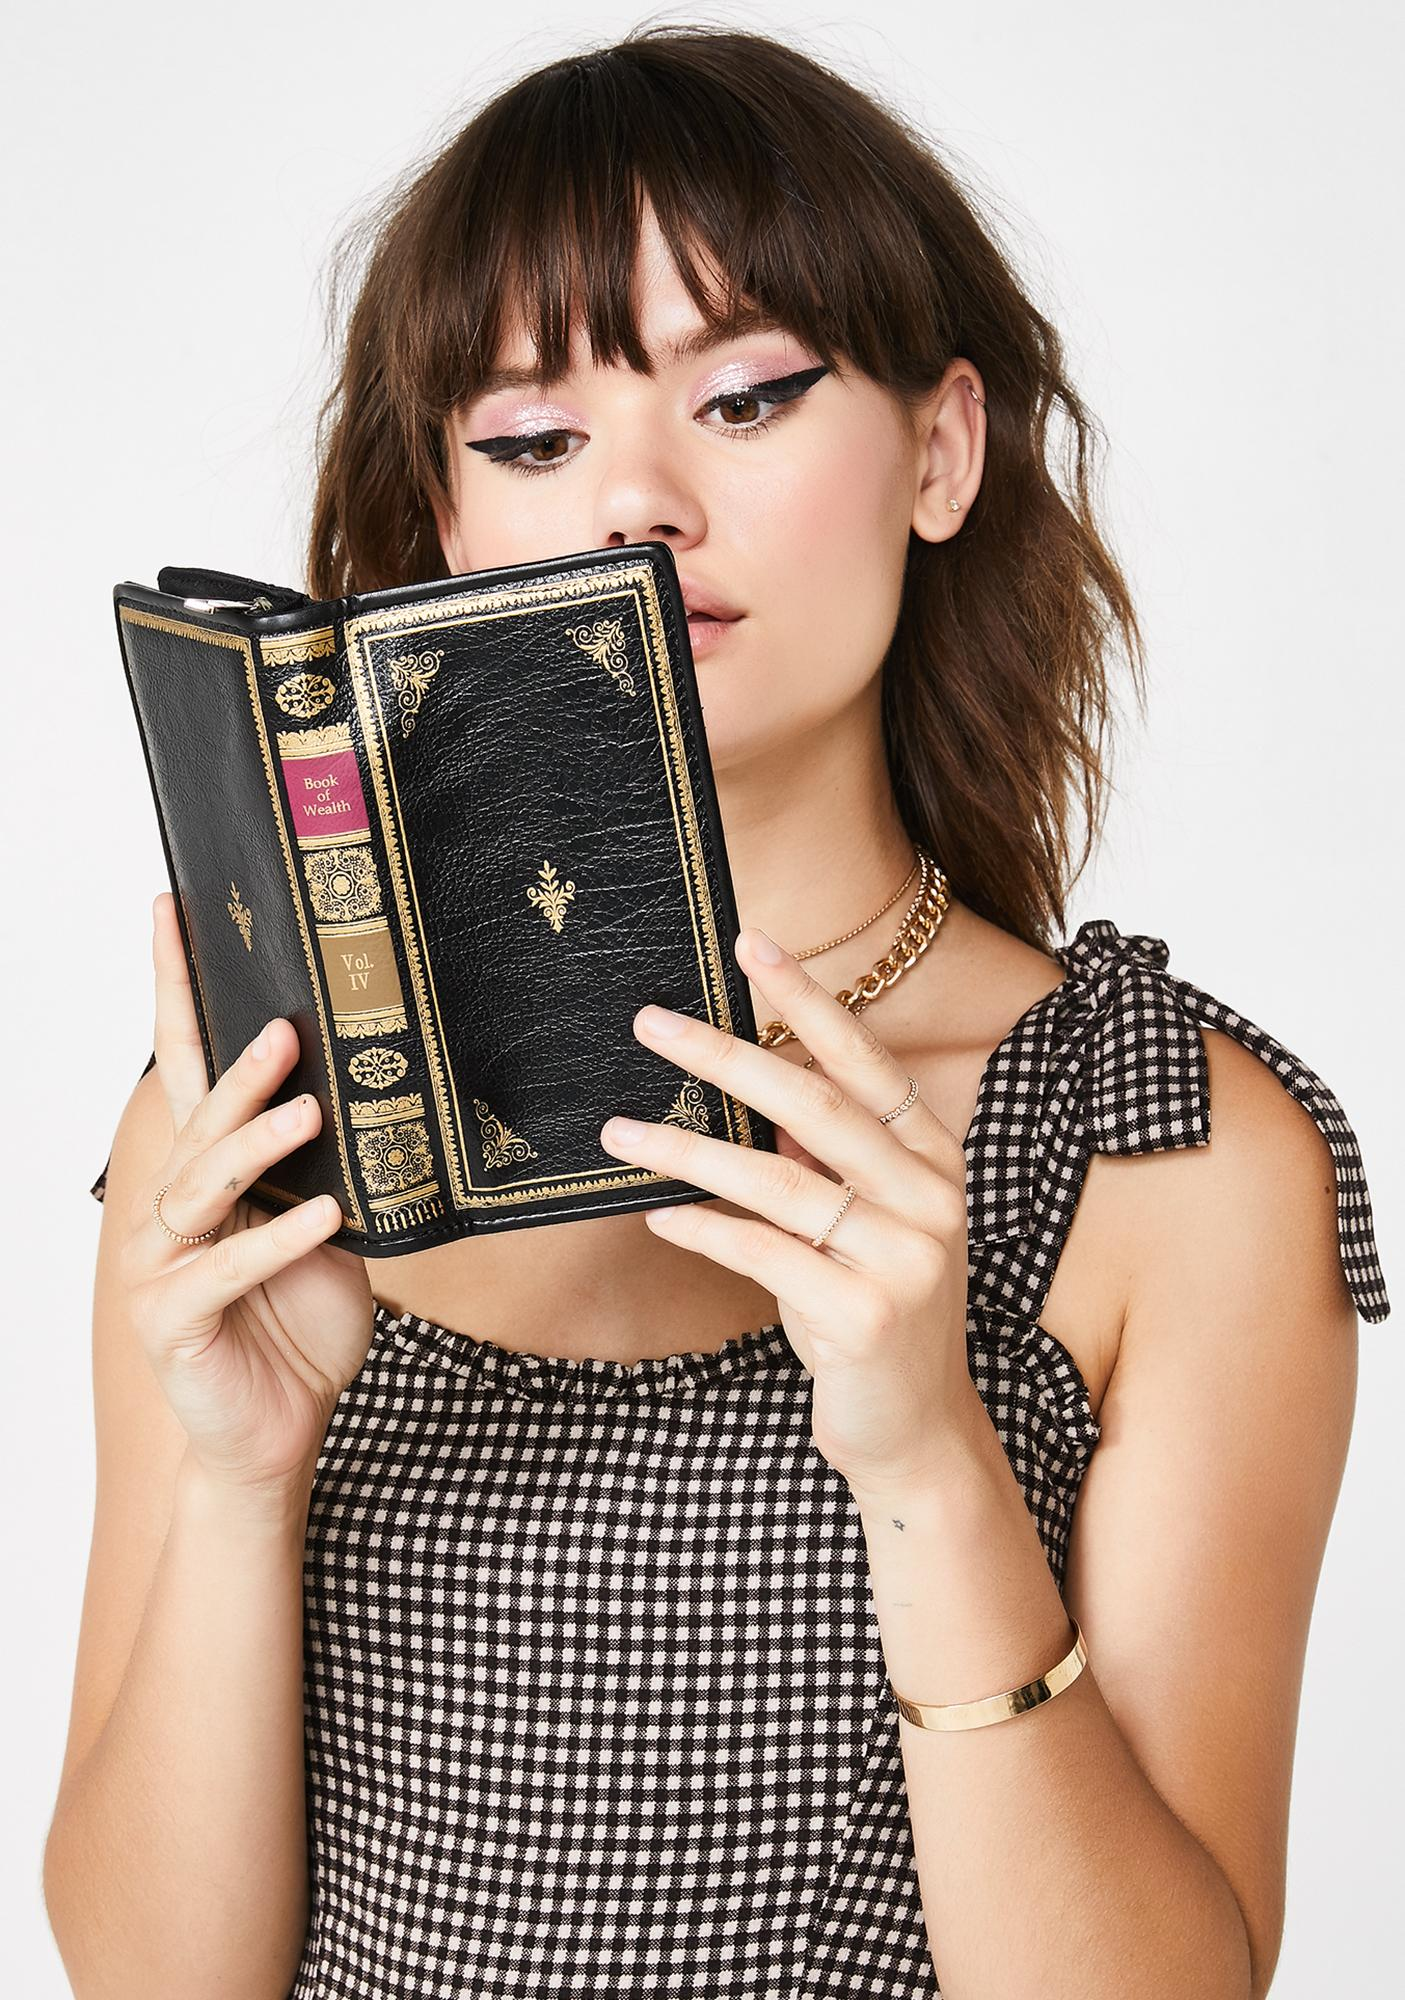 Book Worm Book Wallet